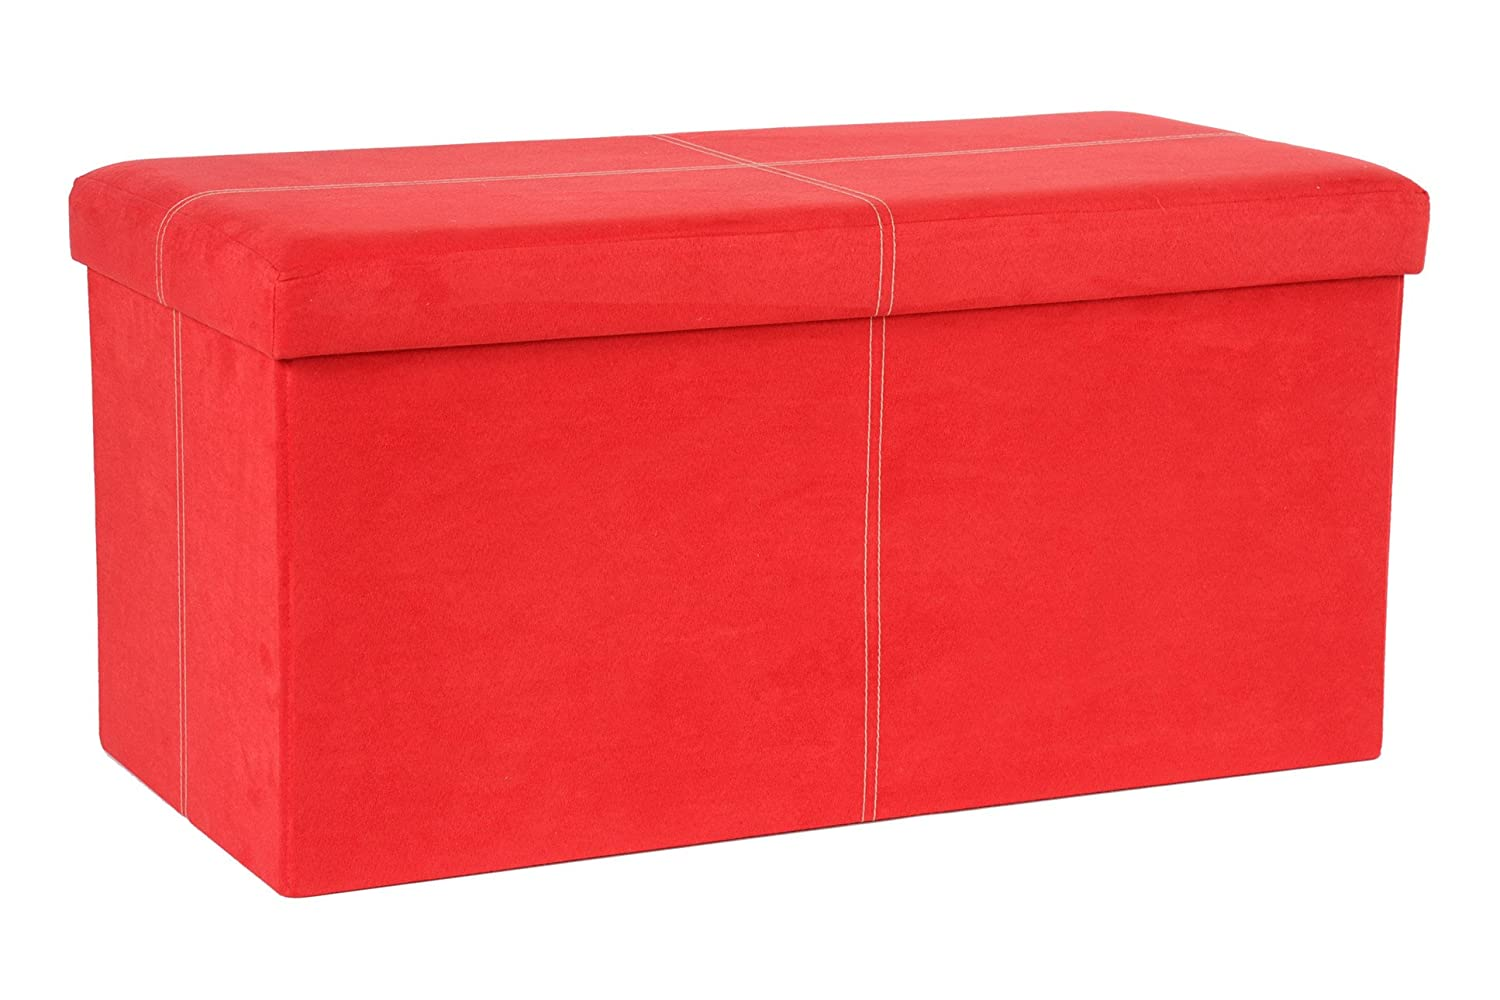 The FHE Group Folding Storage Bench, 30 by 15 by 15-Inch, Red Suede